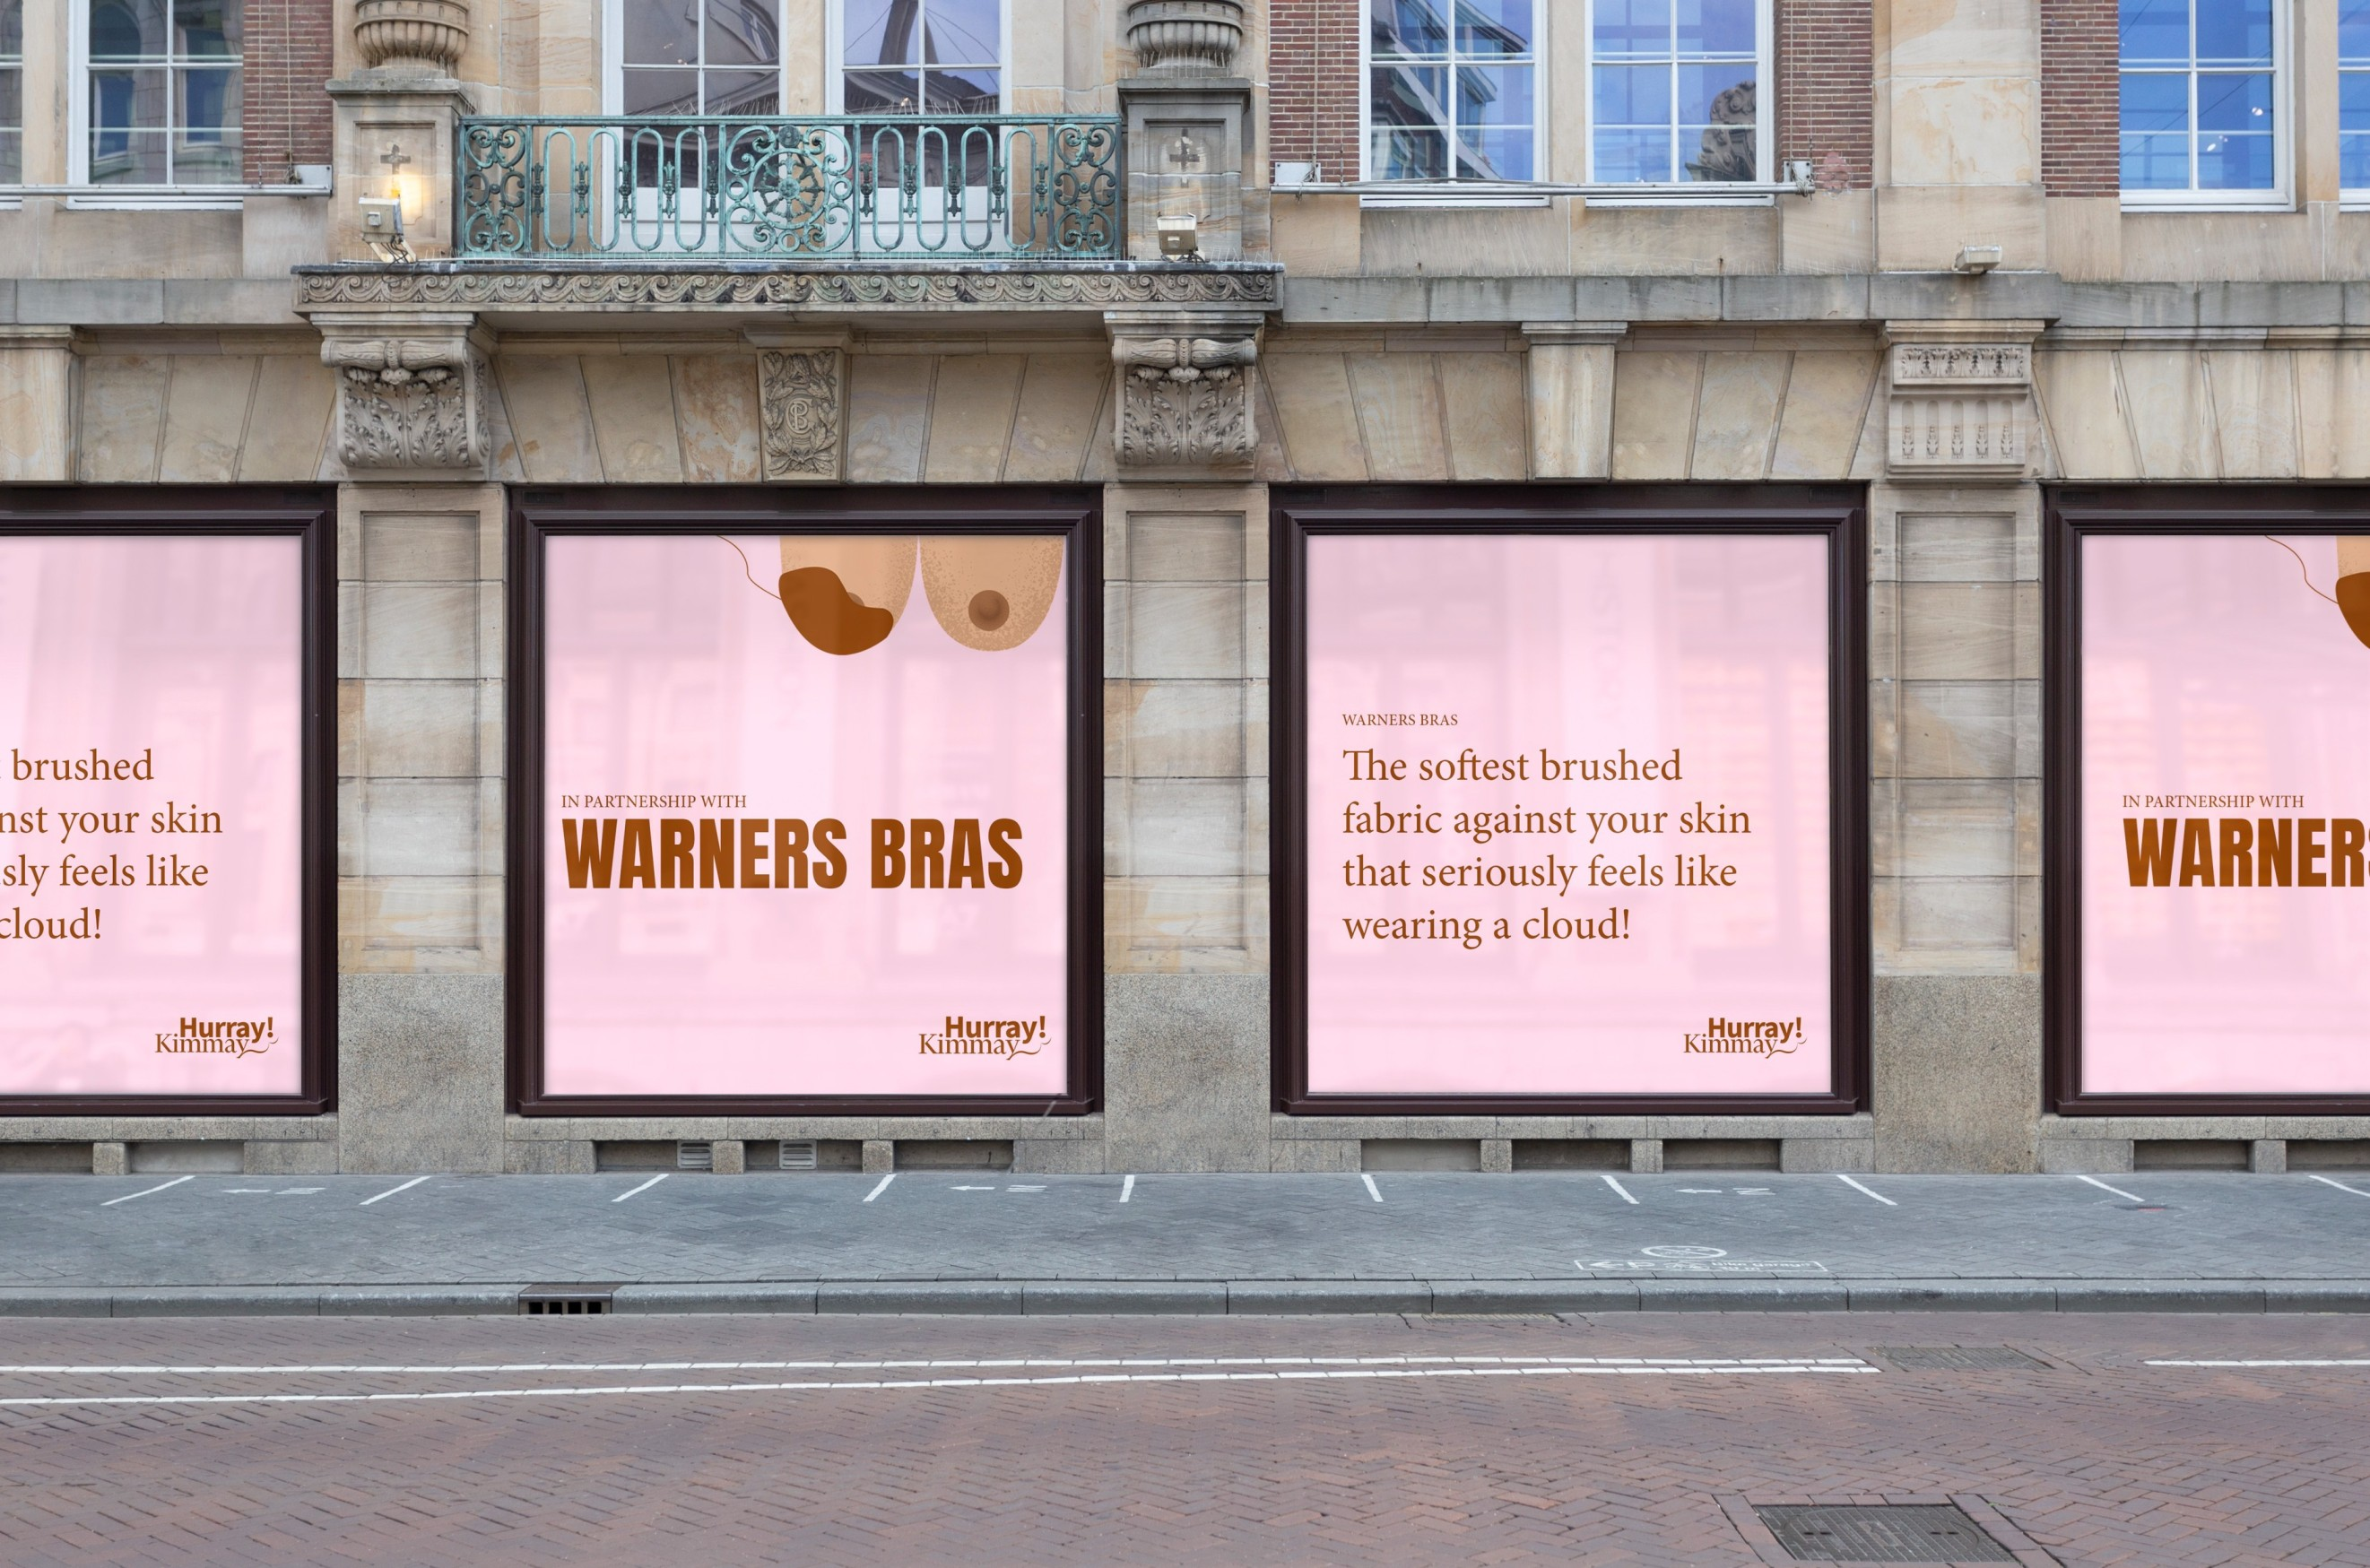 Monograph&Co. Create New Brand Identity for Better Support of Bra Buying Experience